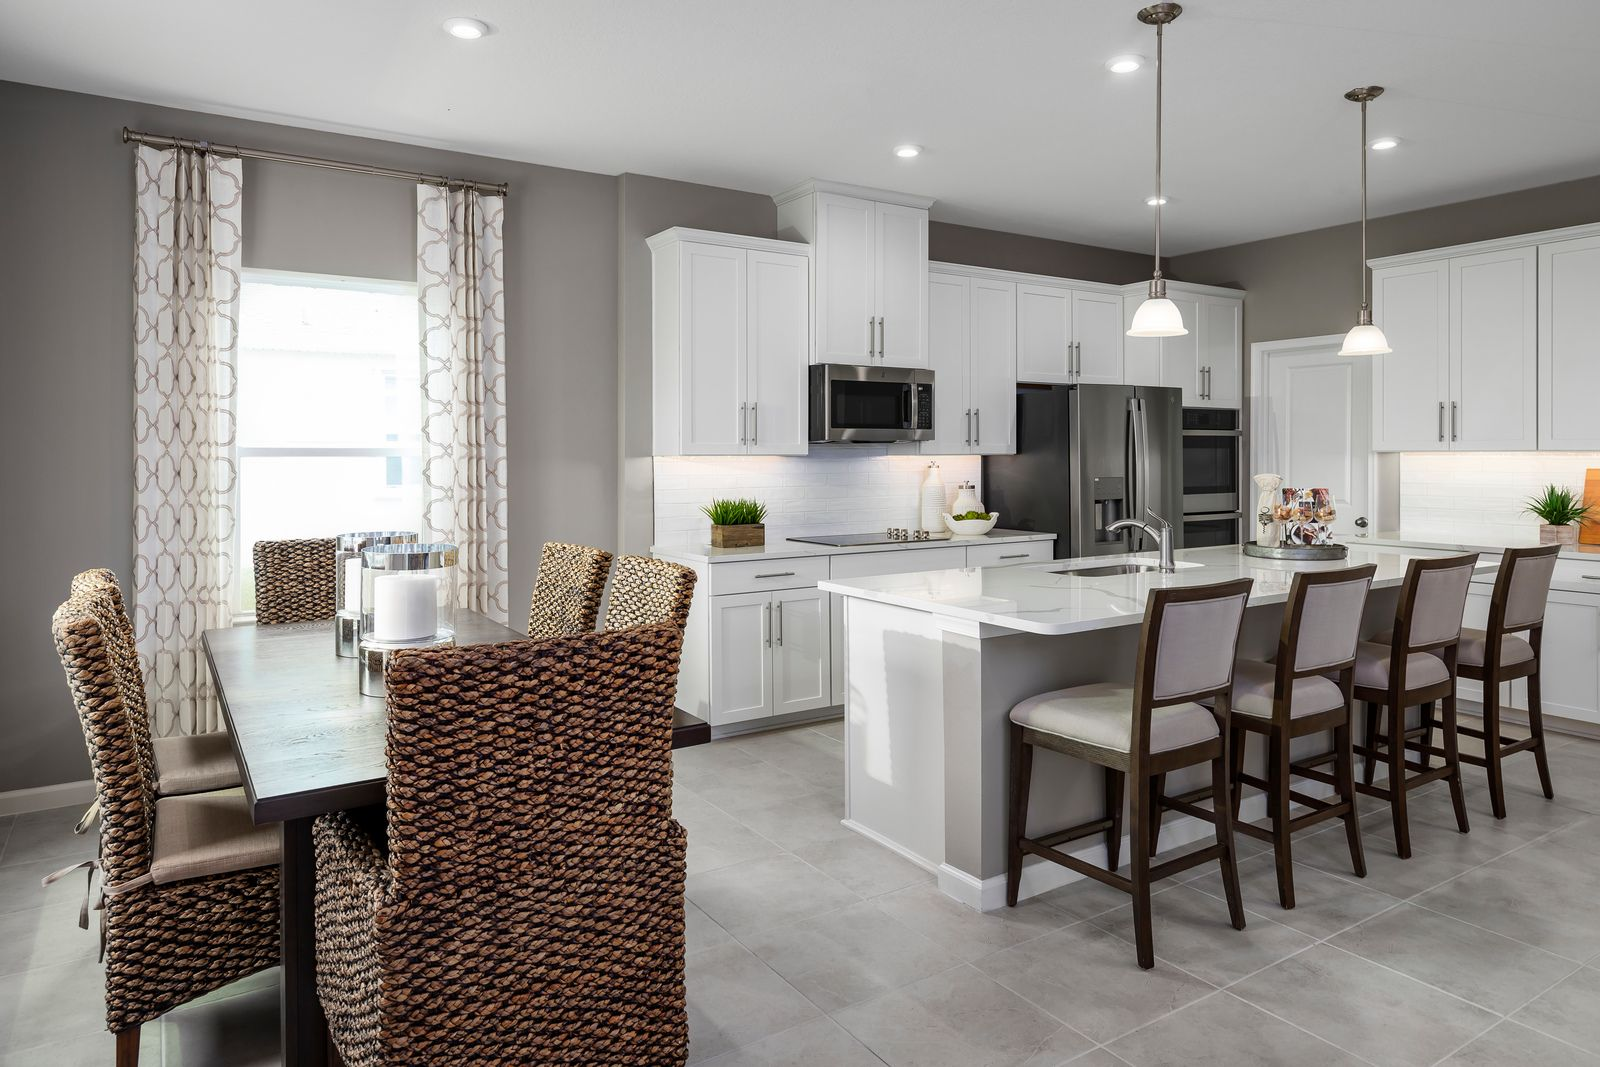 Kitchen featured in the Peterson Cove By Ryan Homes in Indian River County, FL